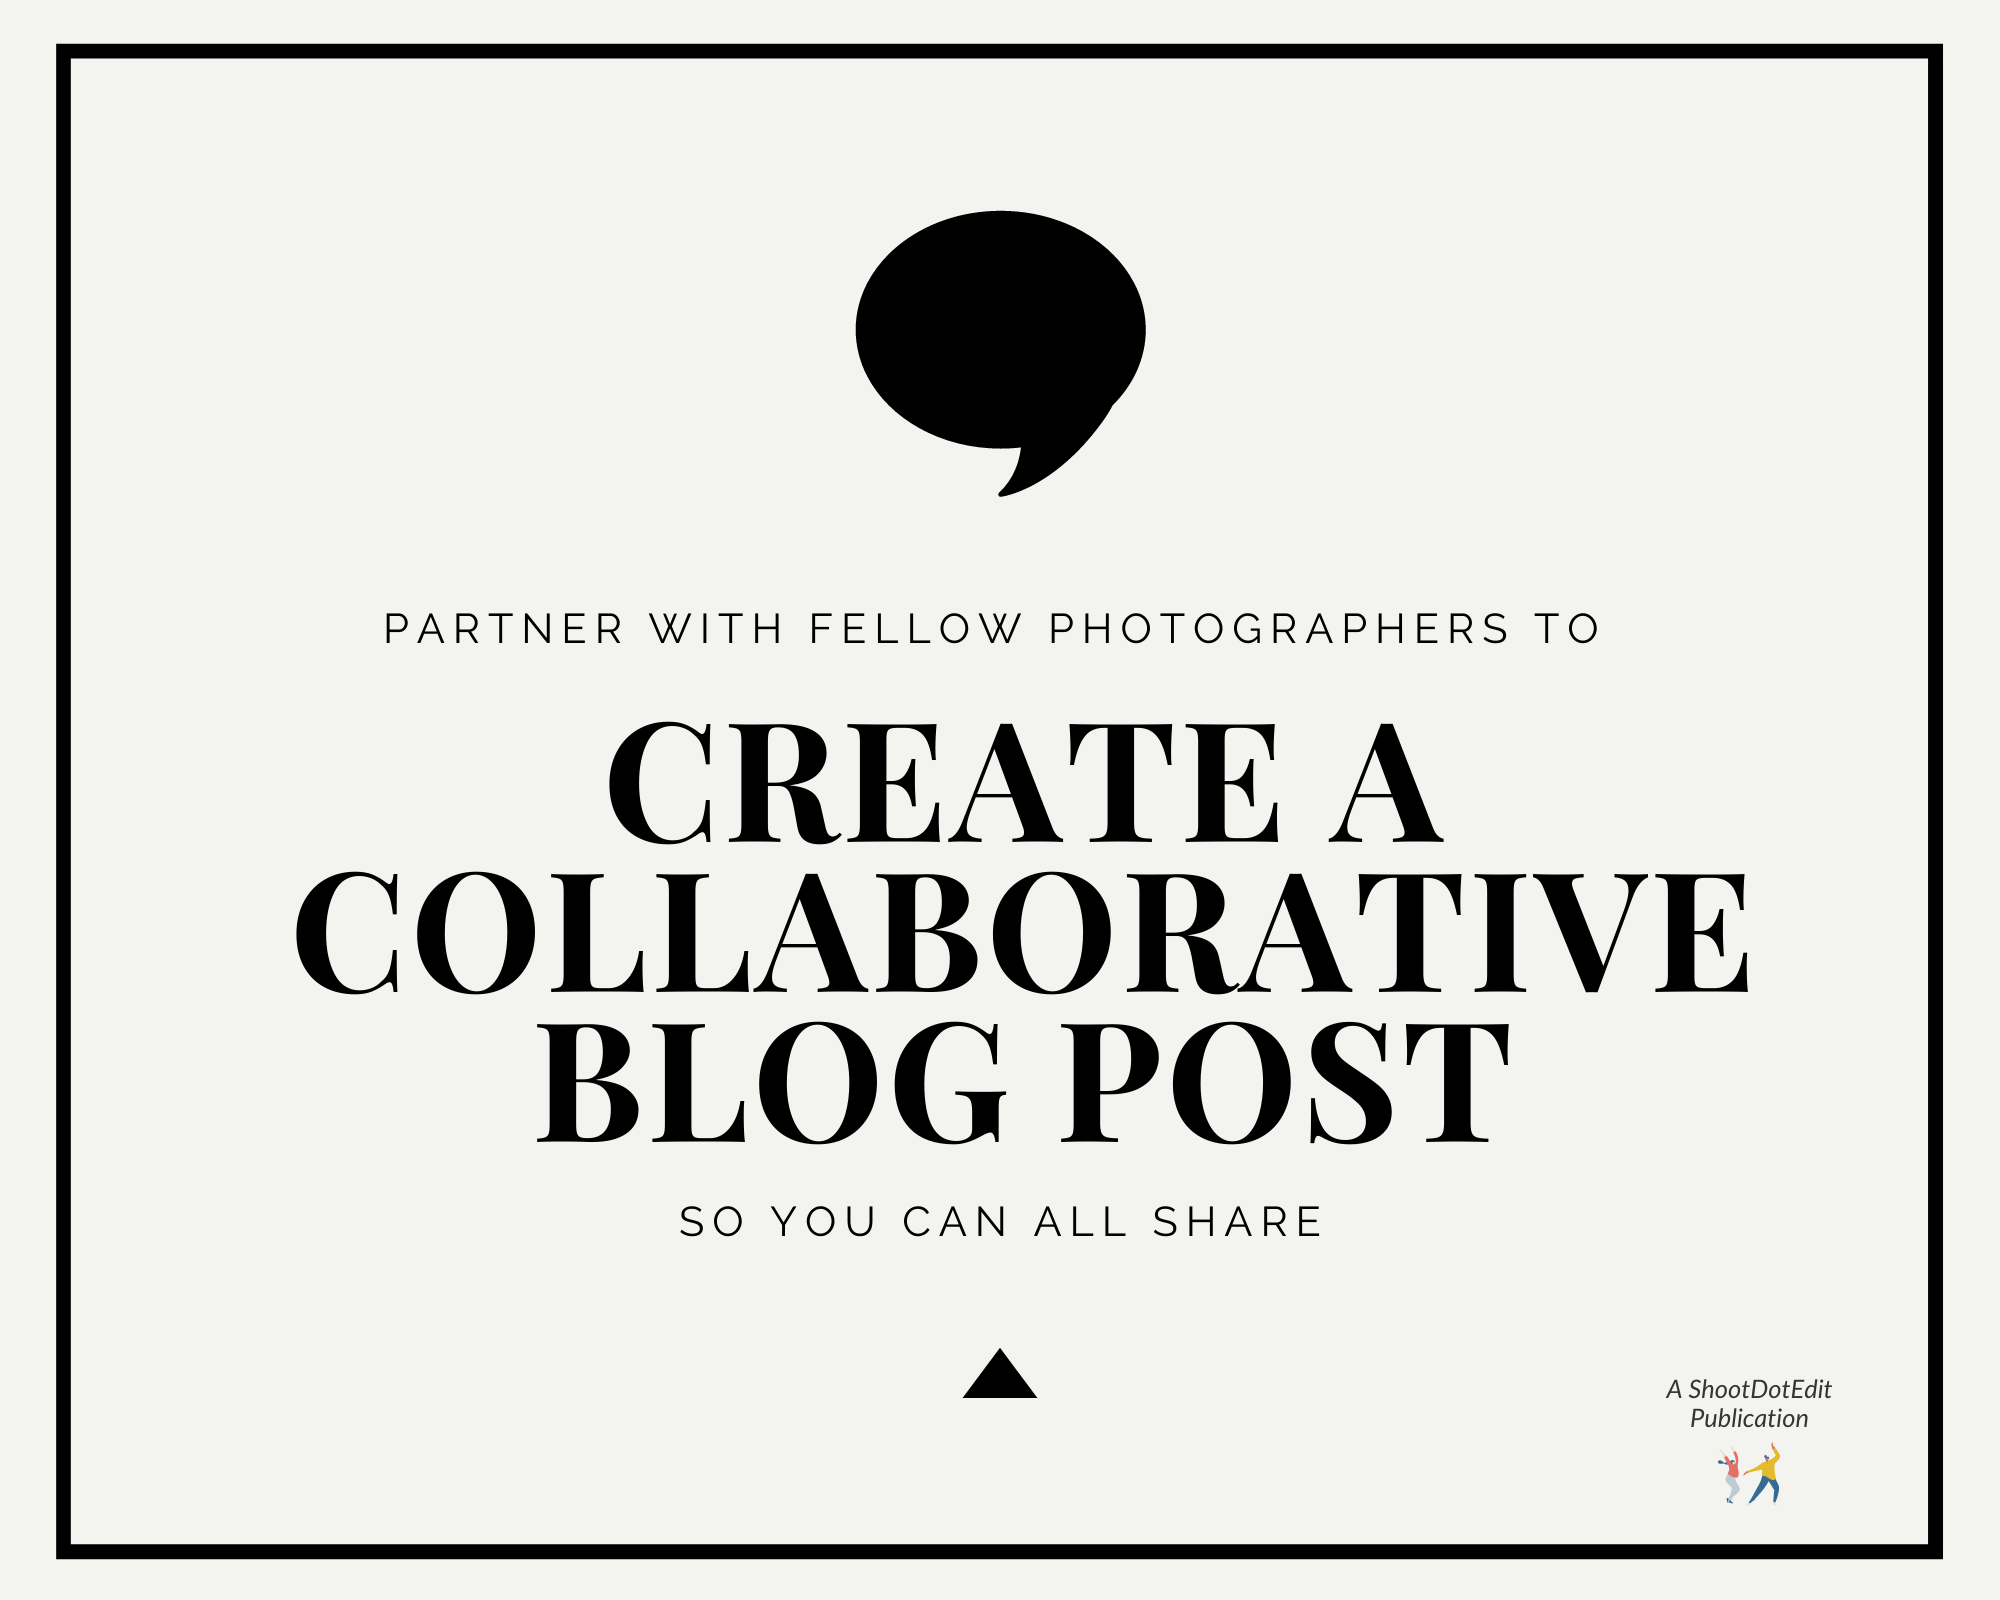 Graphic displaying - Partner with fellow photographers to create a collaborative blog post so you can all share.